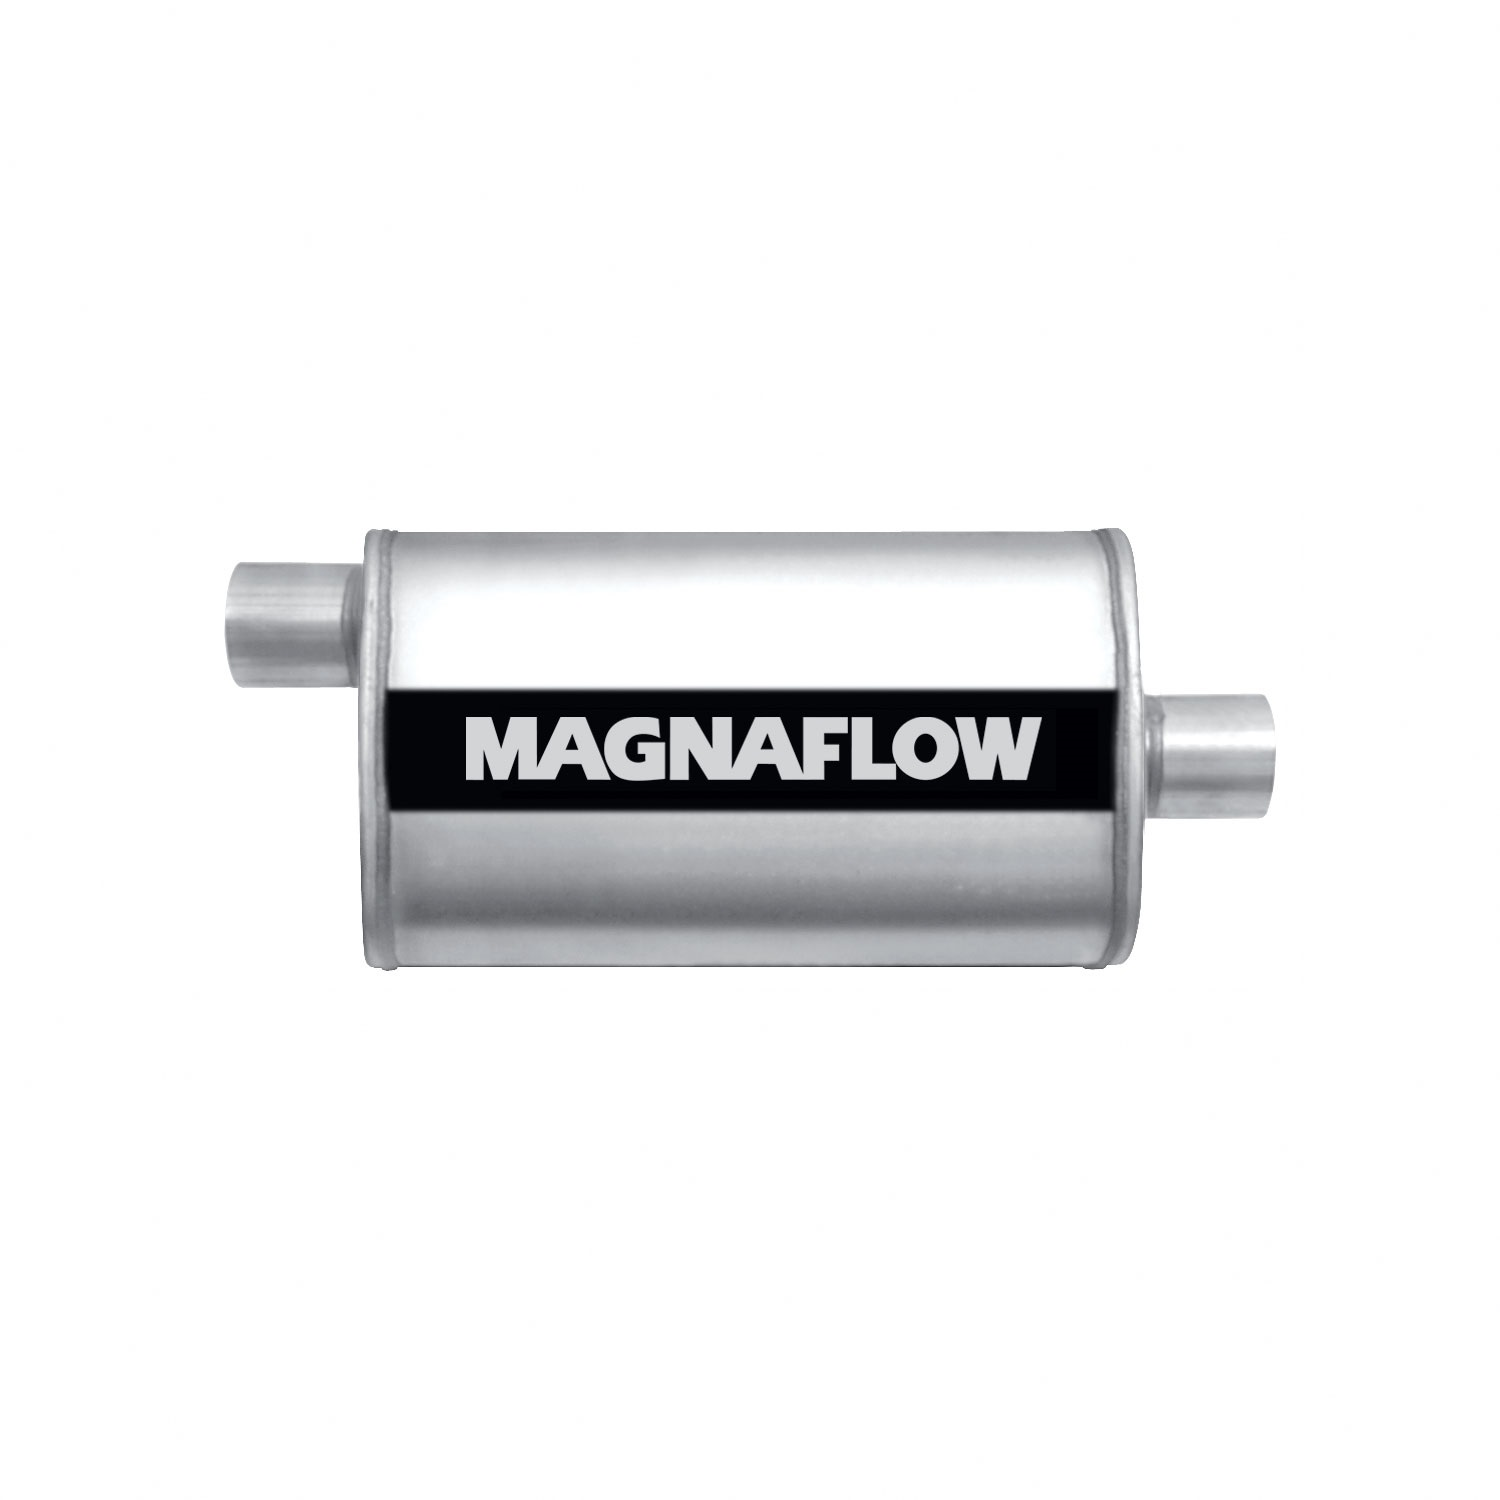 Were magnaflow exhaust sounds for trucks